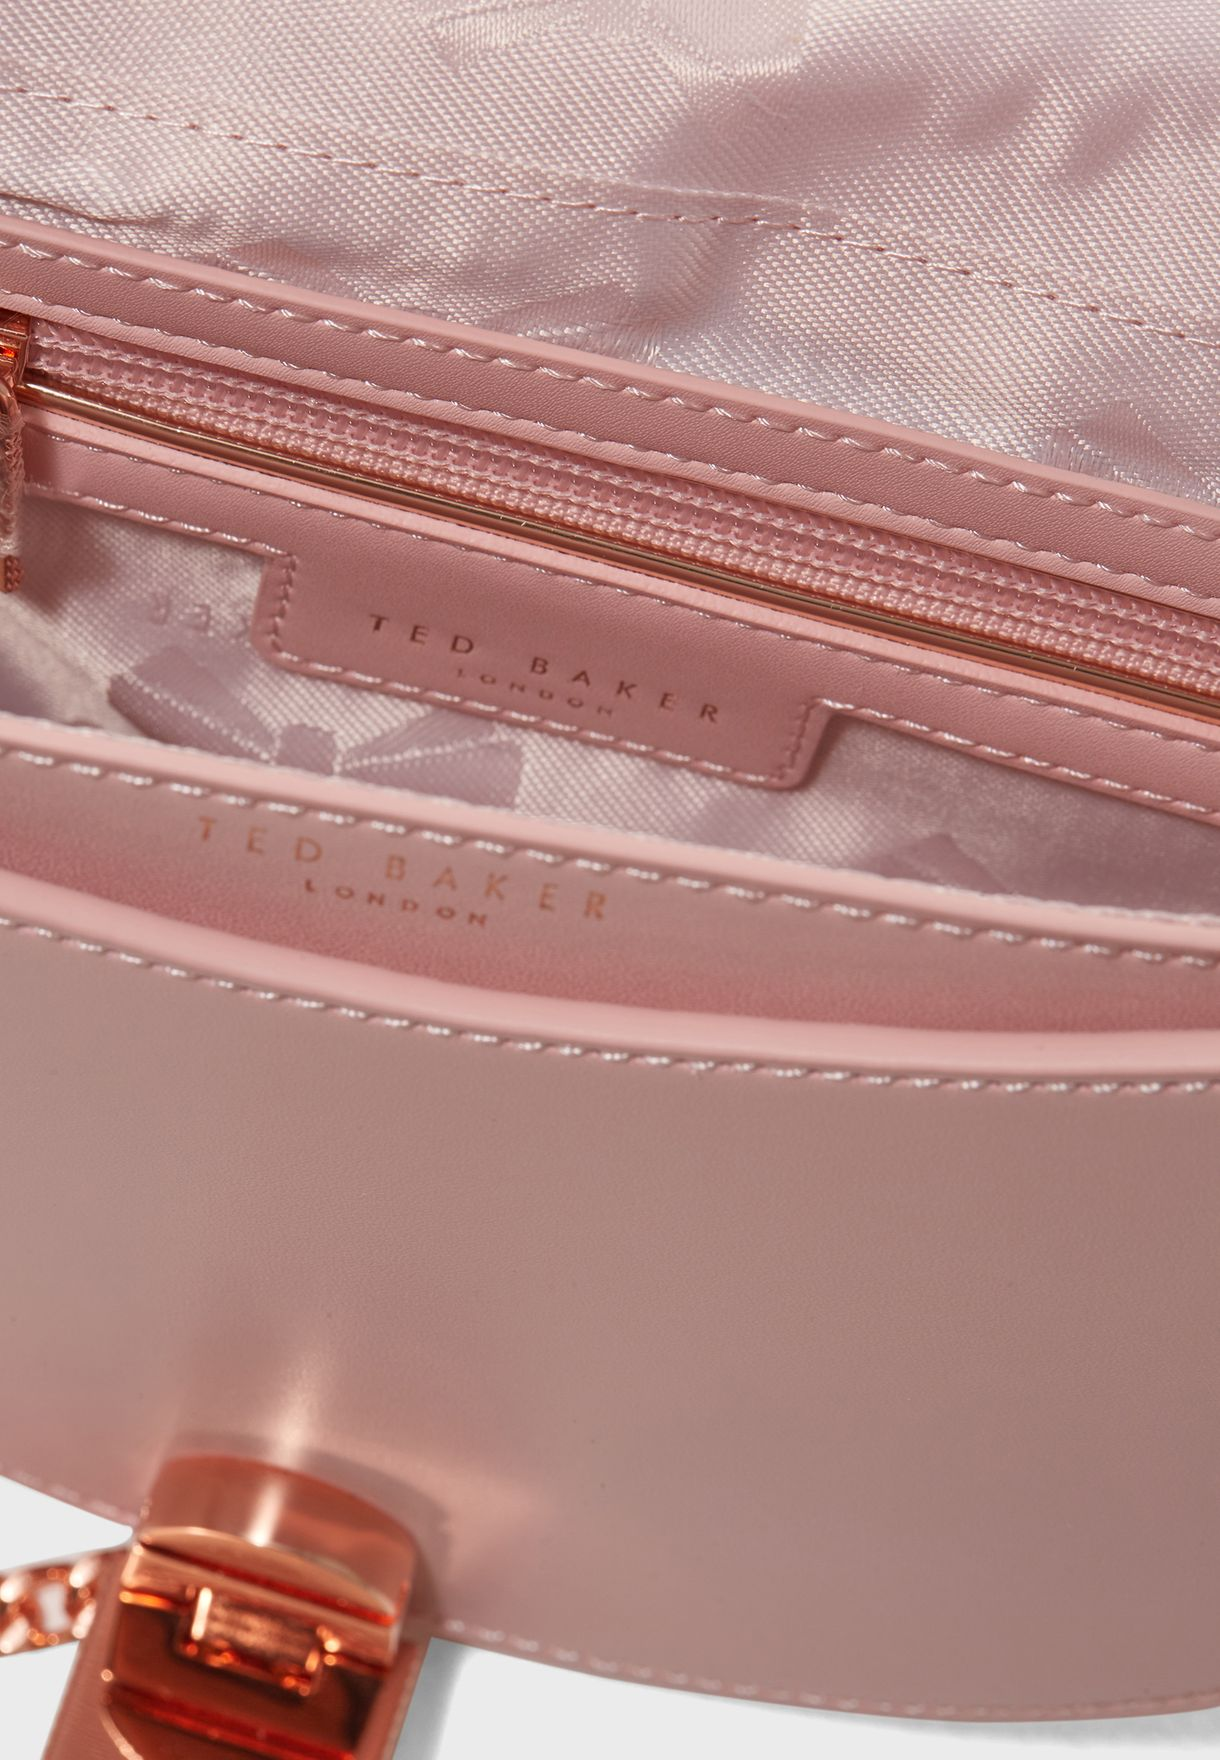 69e590de40 Shop Ted baker pink Susy Blossom Moon Crossbody 143877 for Women in ...